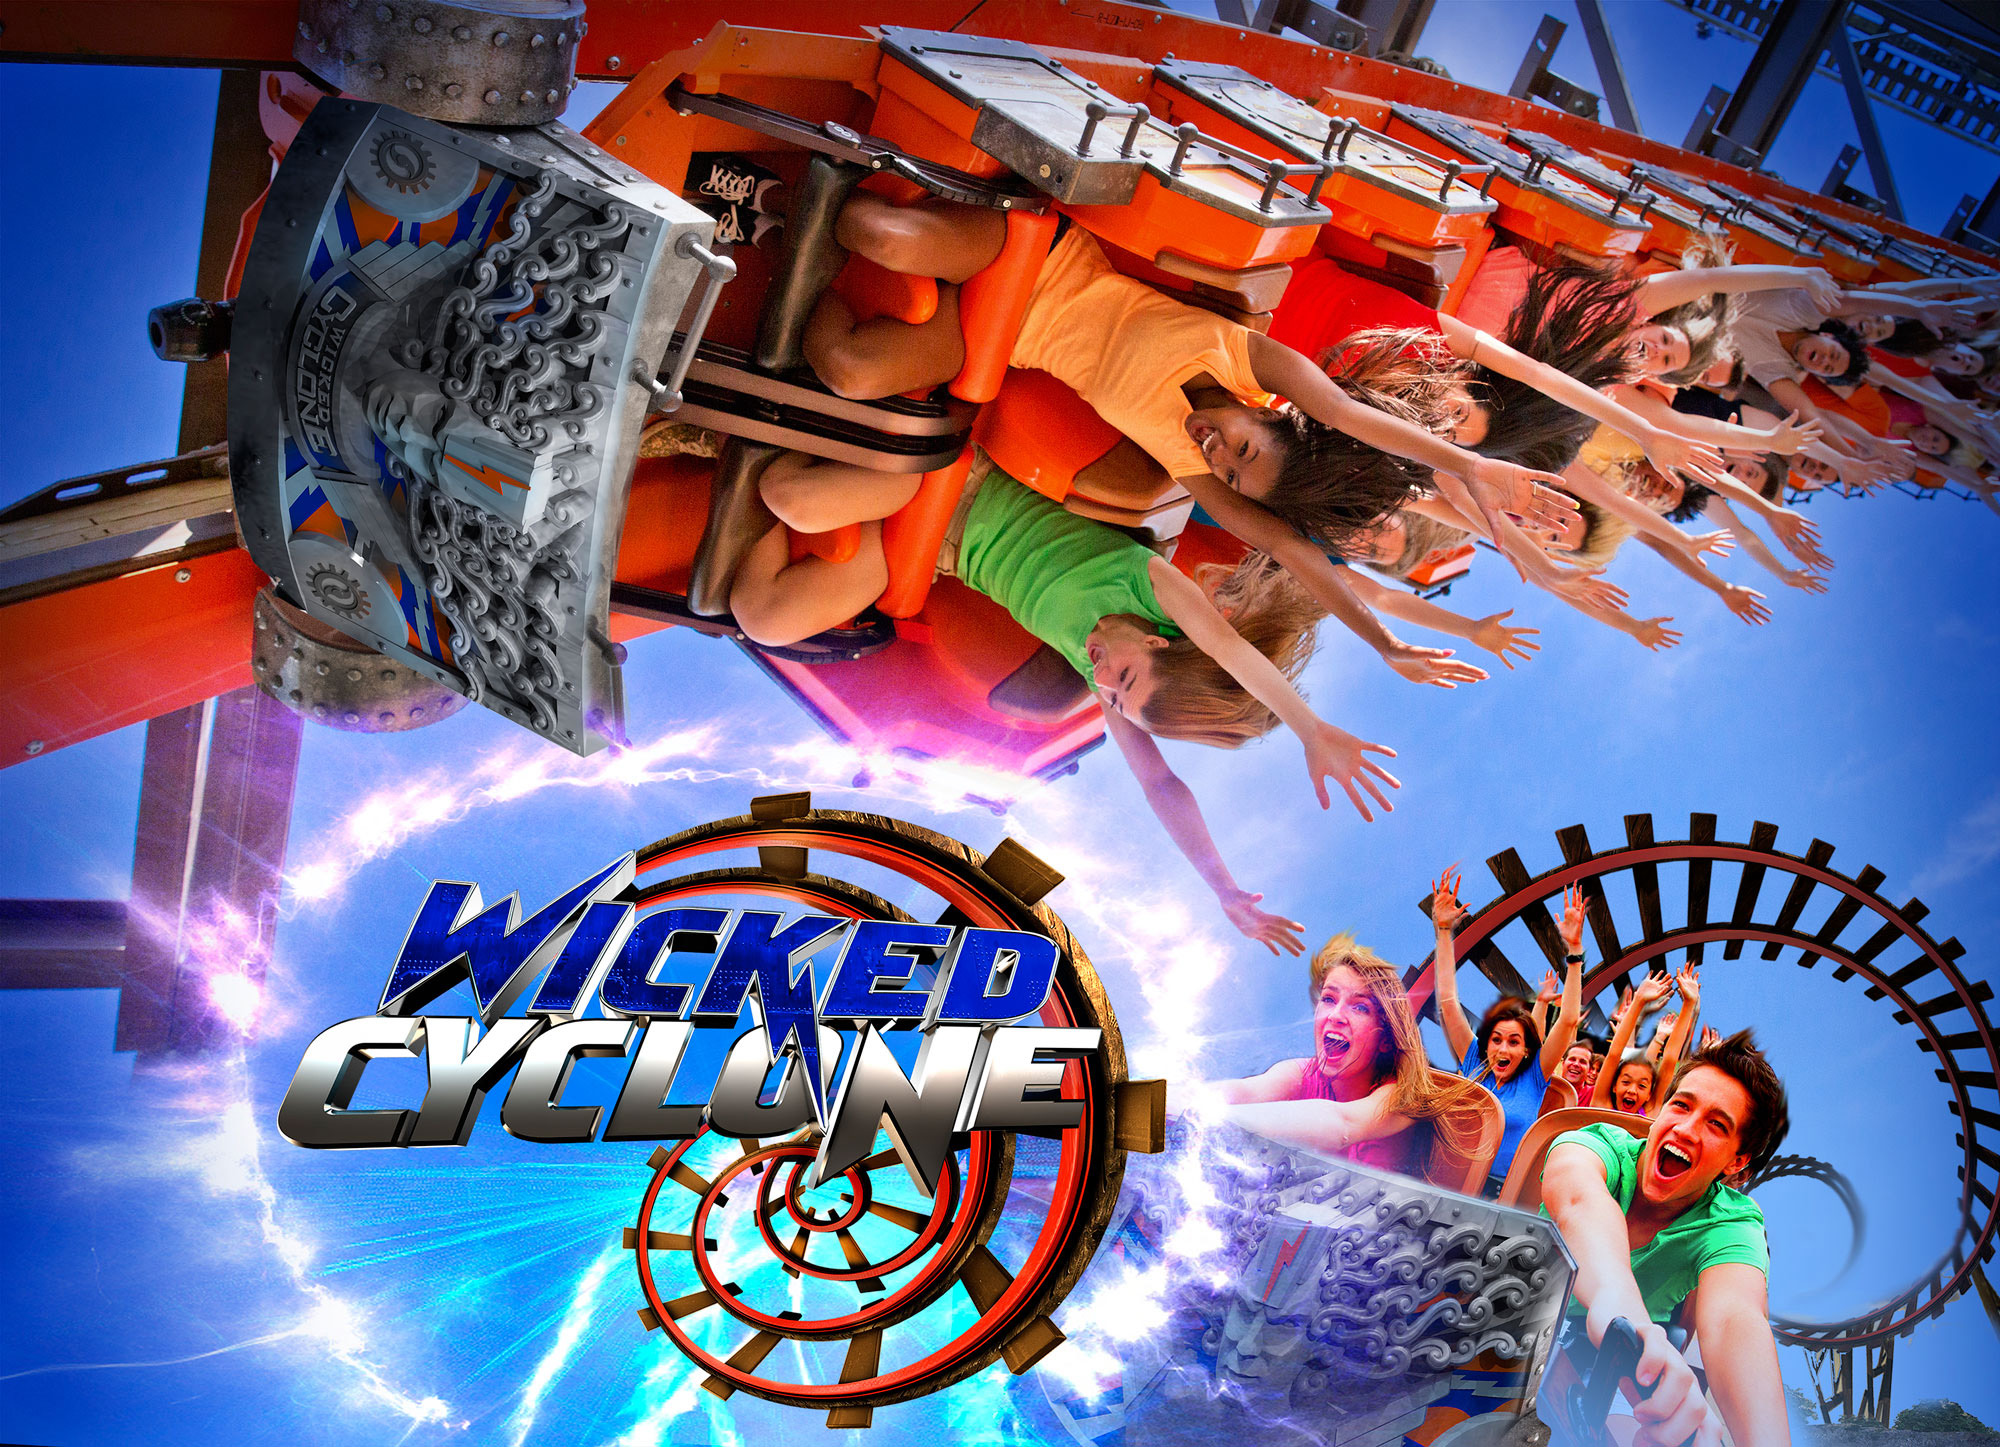 Wicked Cyclone - NEW at Six Flags New England -Spring 2015